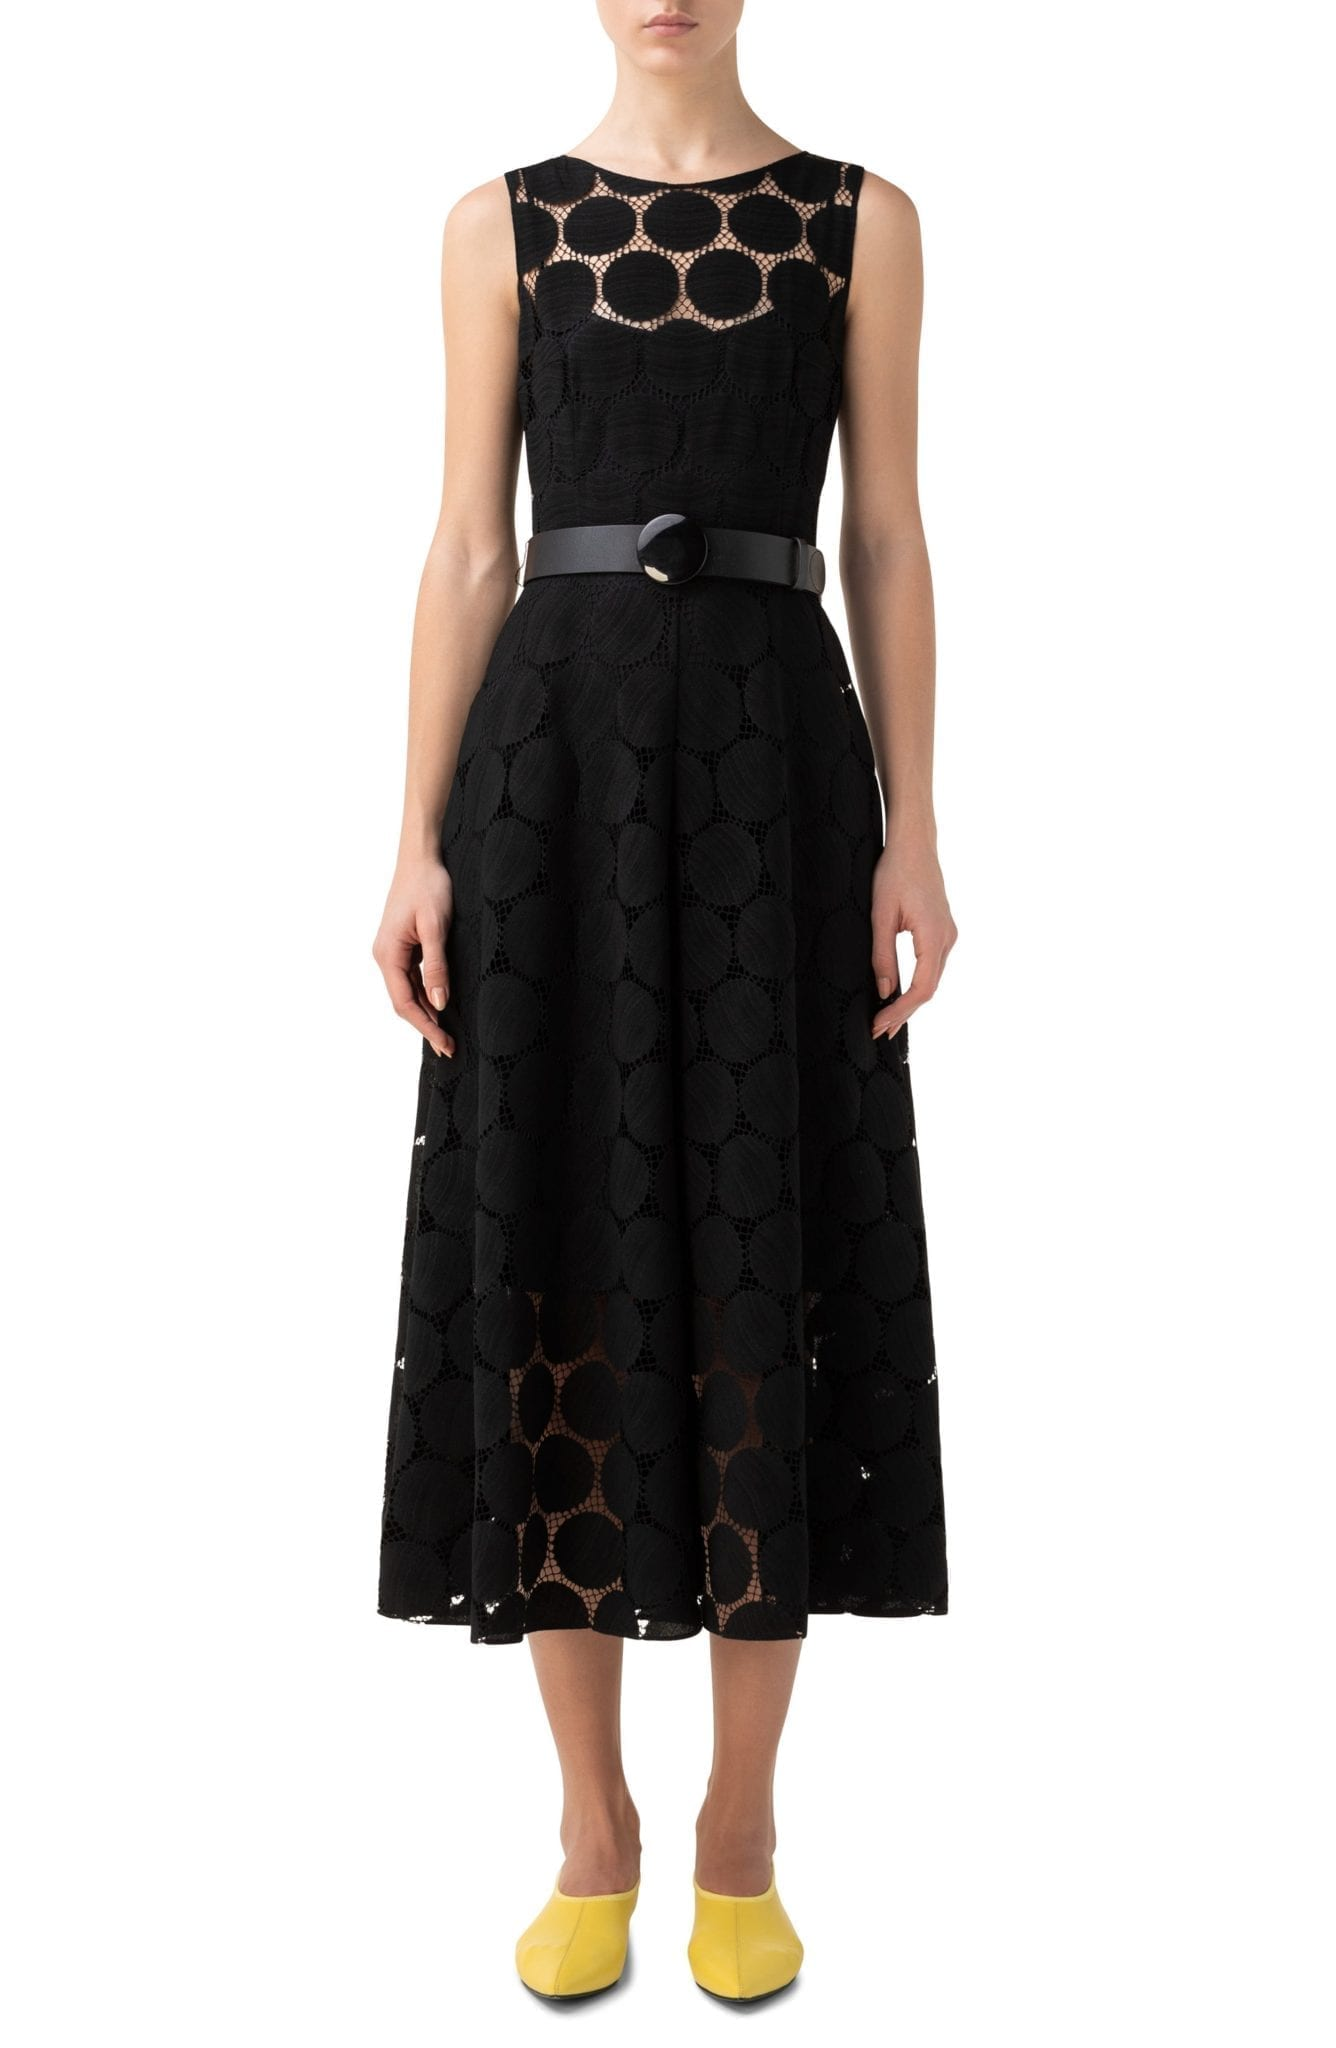 AKRIS PUNTO Dot Lace Sleeveless Dress